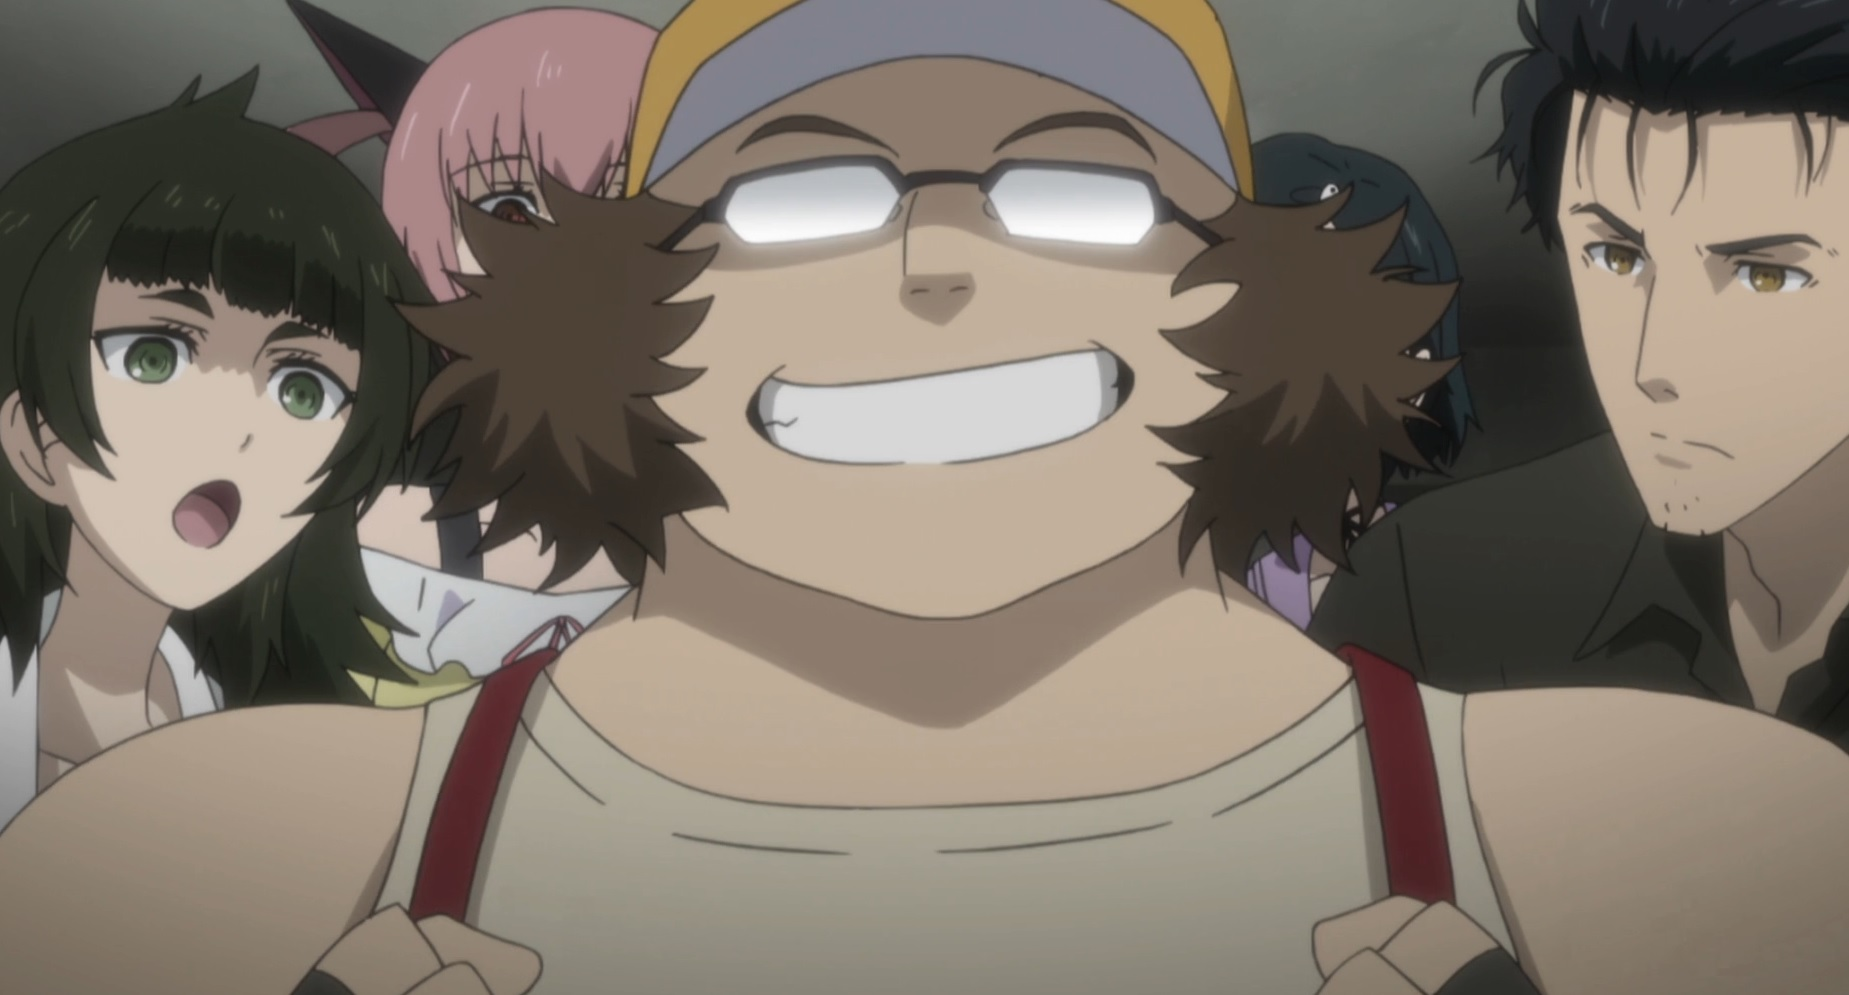 steins gate 0 episode 19 review